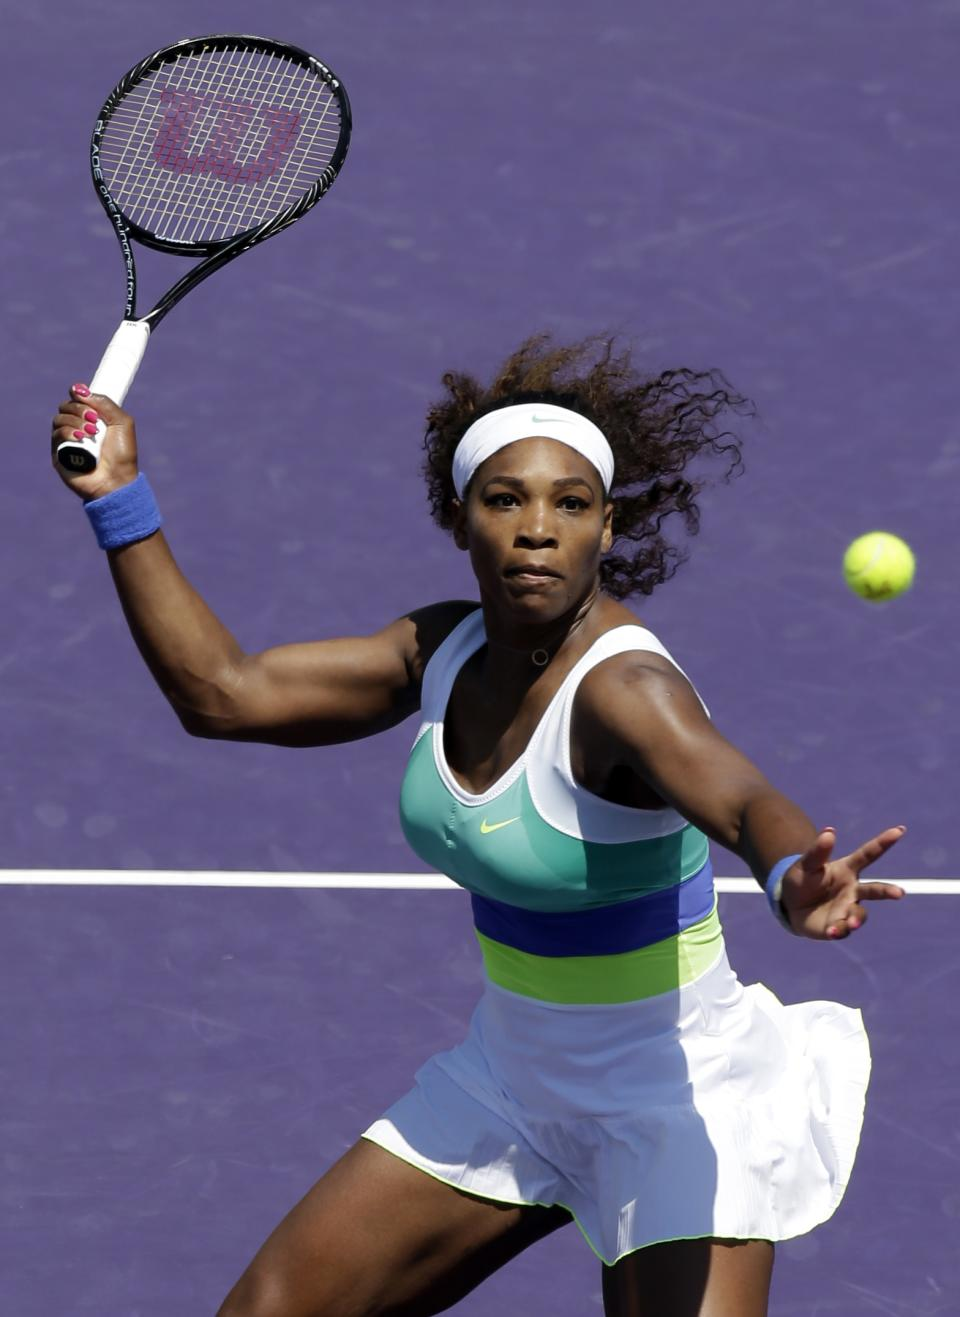 Serena Williams returns a shot to Maria Sharapova, of Russia, during the final match of the Sony Open tennis tournament, Saturday, March 30, 2013, in Key Biscayne, Fla. (AP Photo/Wilfredo Lee)